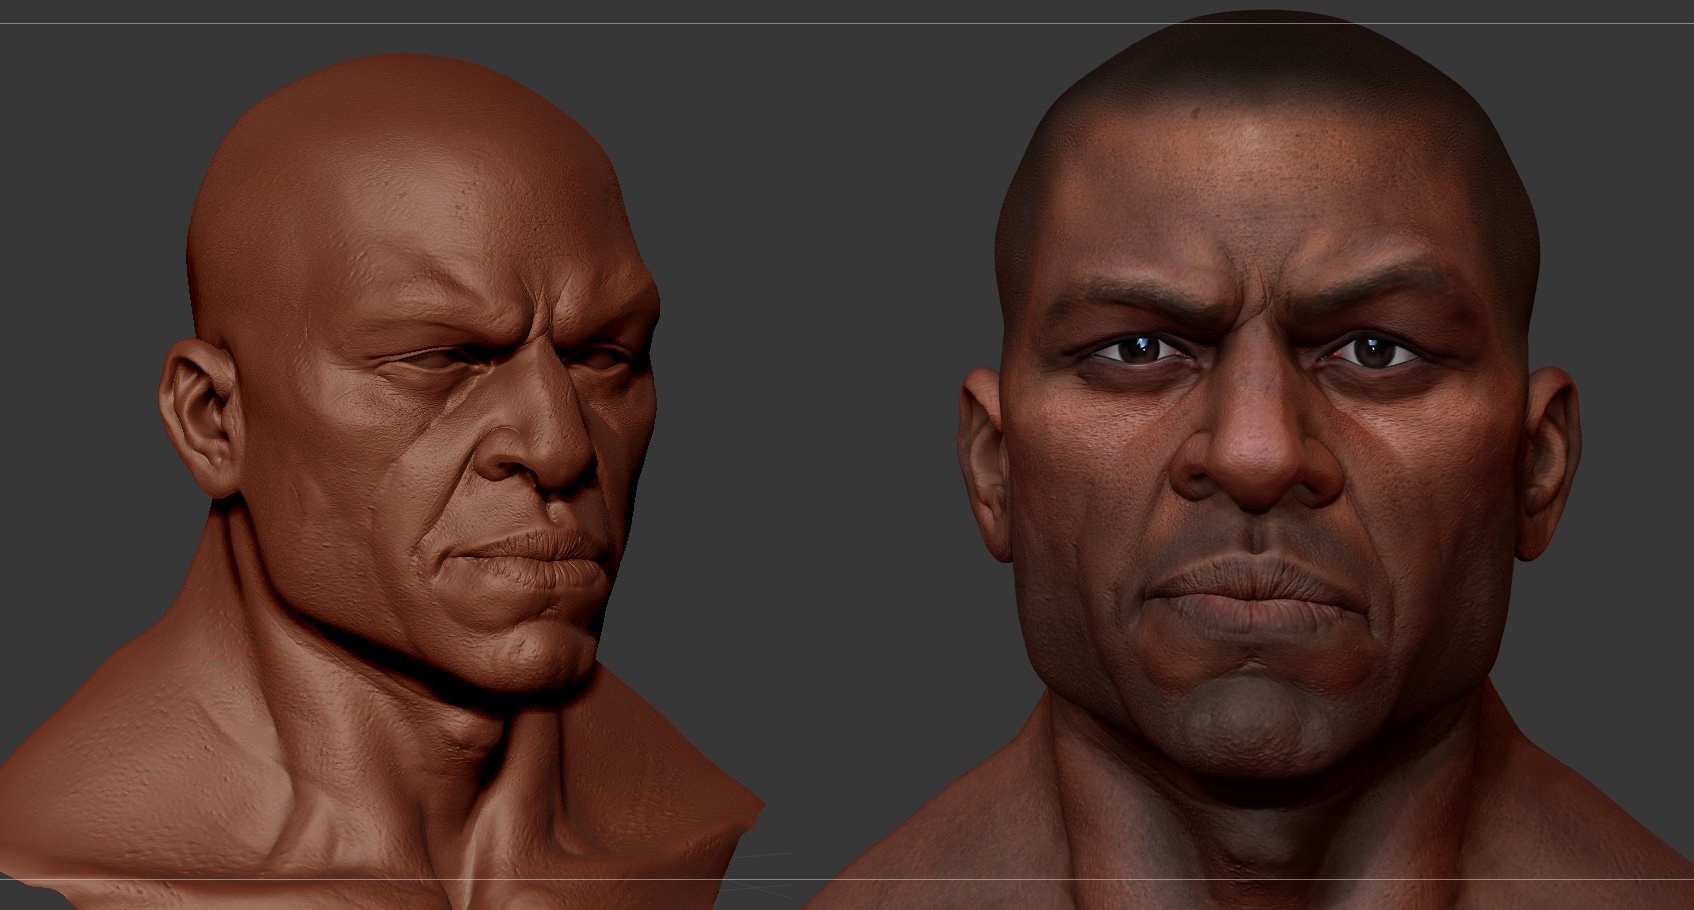 Black Guy Zbrush by mojette